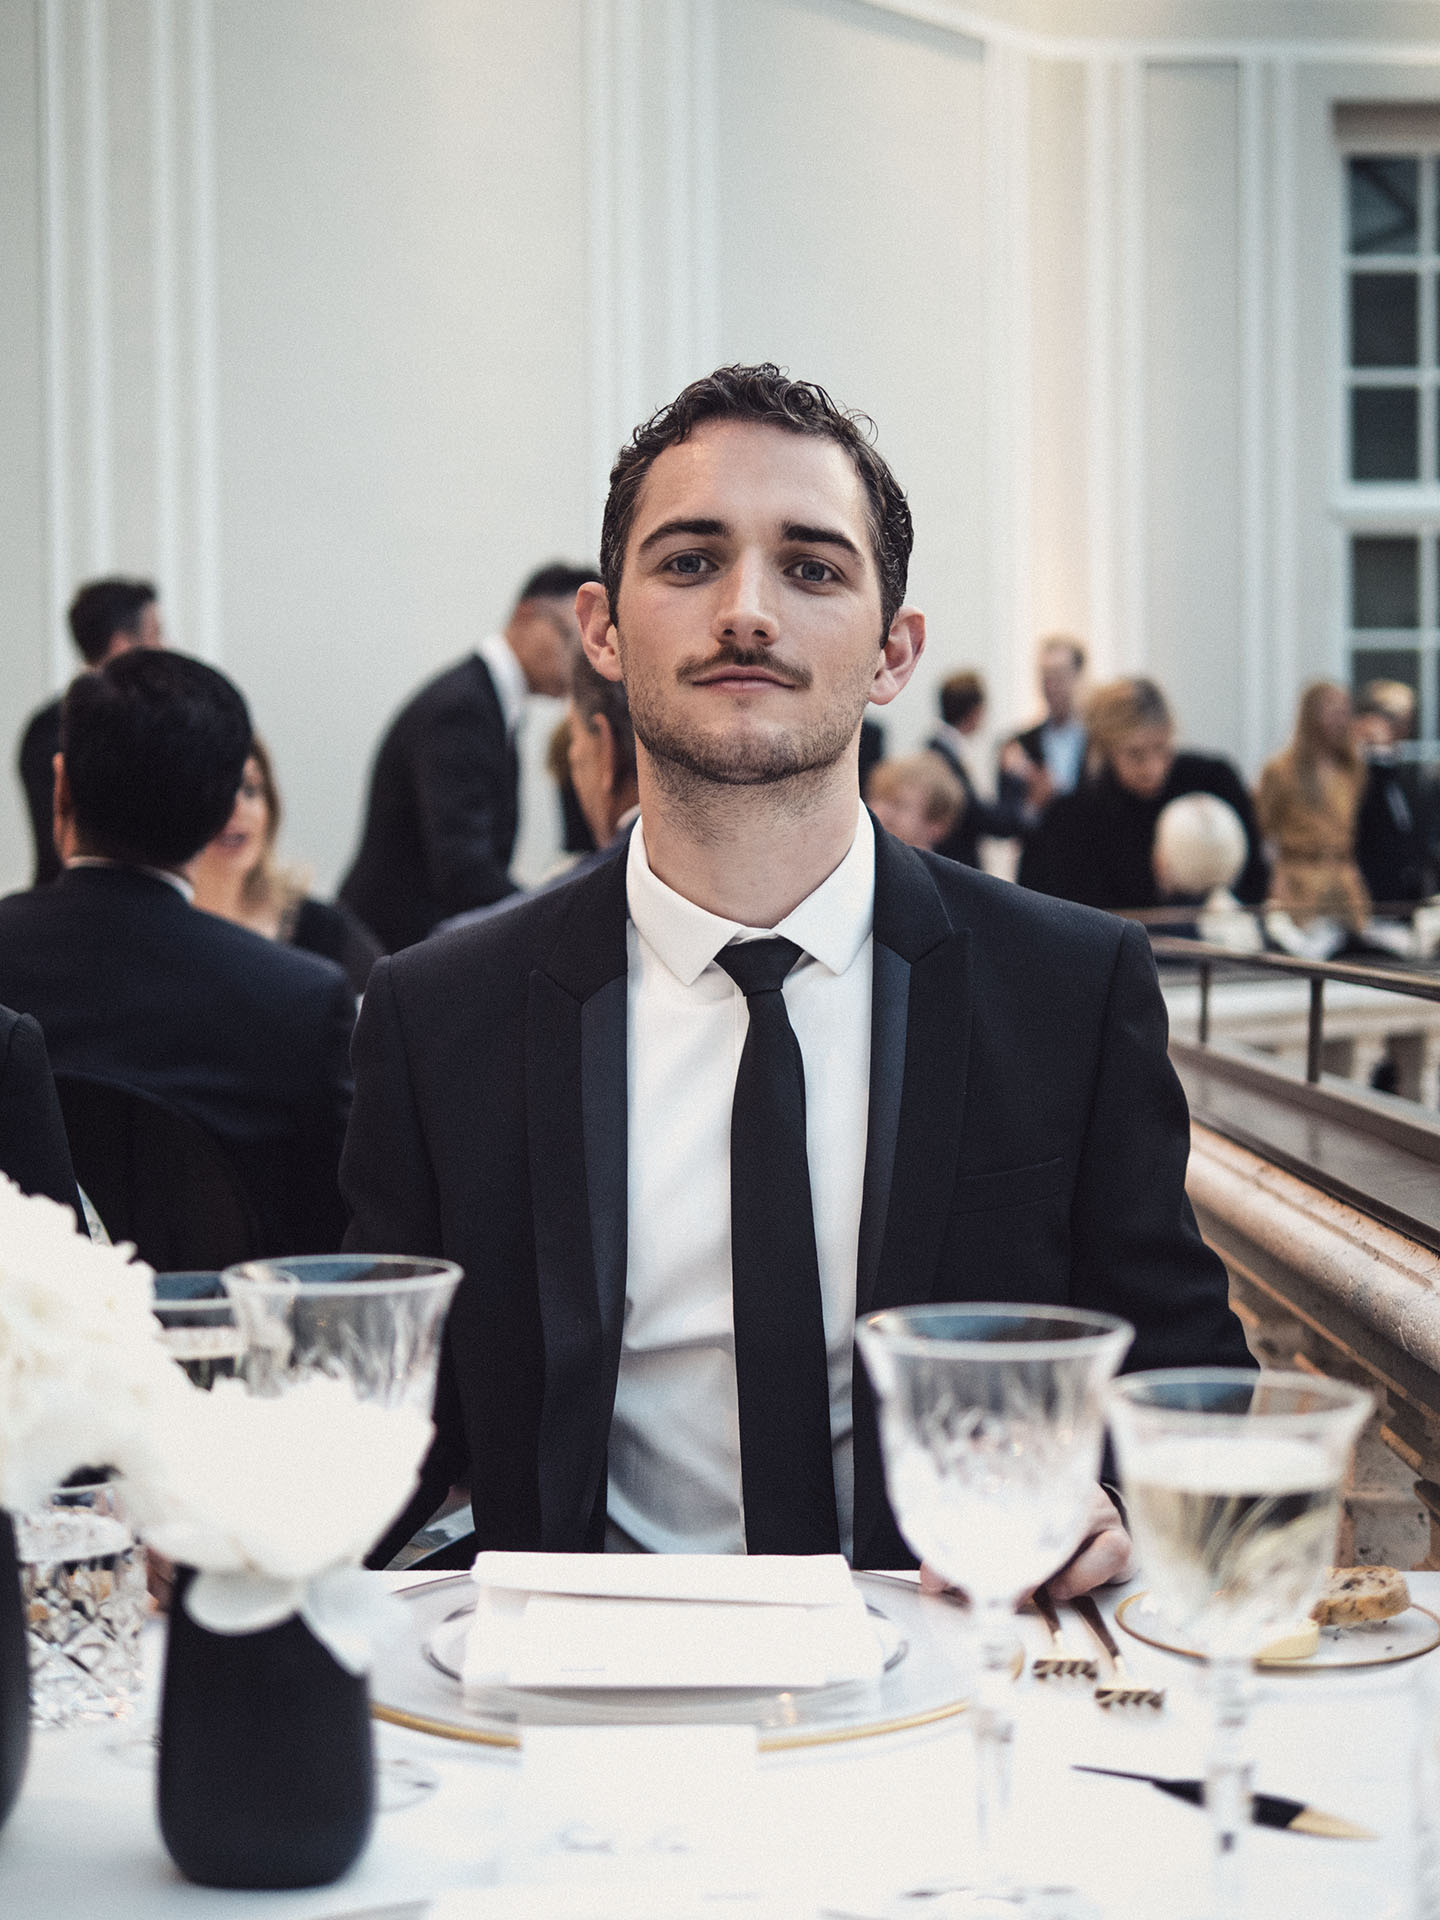 Patron-of-Art-Homage-to-Ludwig-limited-edition-montblanc-2018-jürgen-wesseler-pen-füller-dinner-residenz-münchen-comite-hof-käfer-livingwiththelins-philipp-topman-smoking-black-tie-outfit-suit